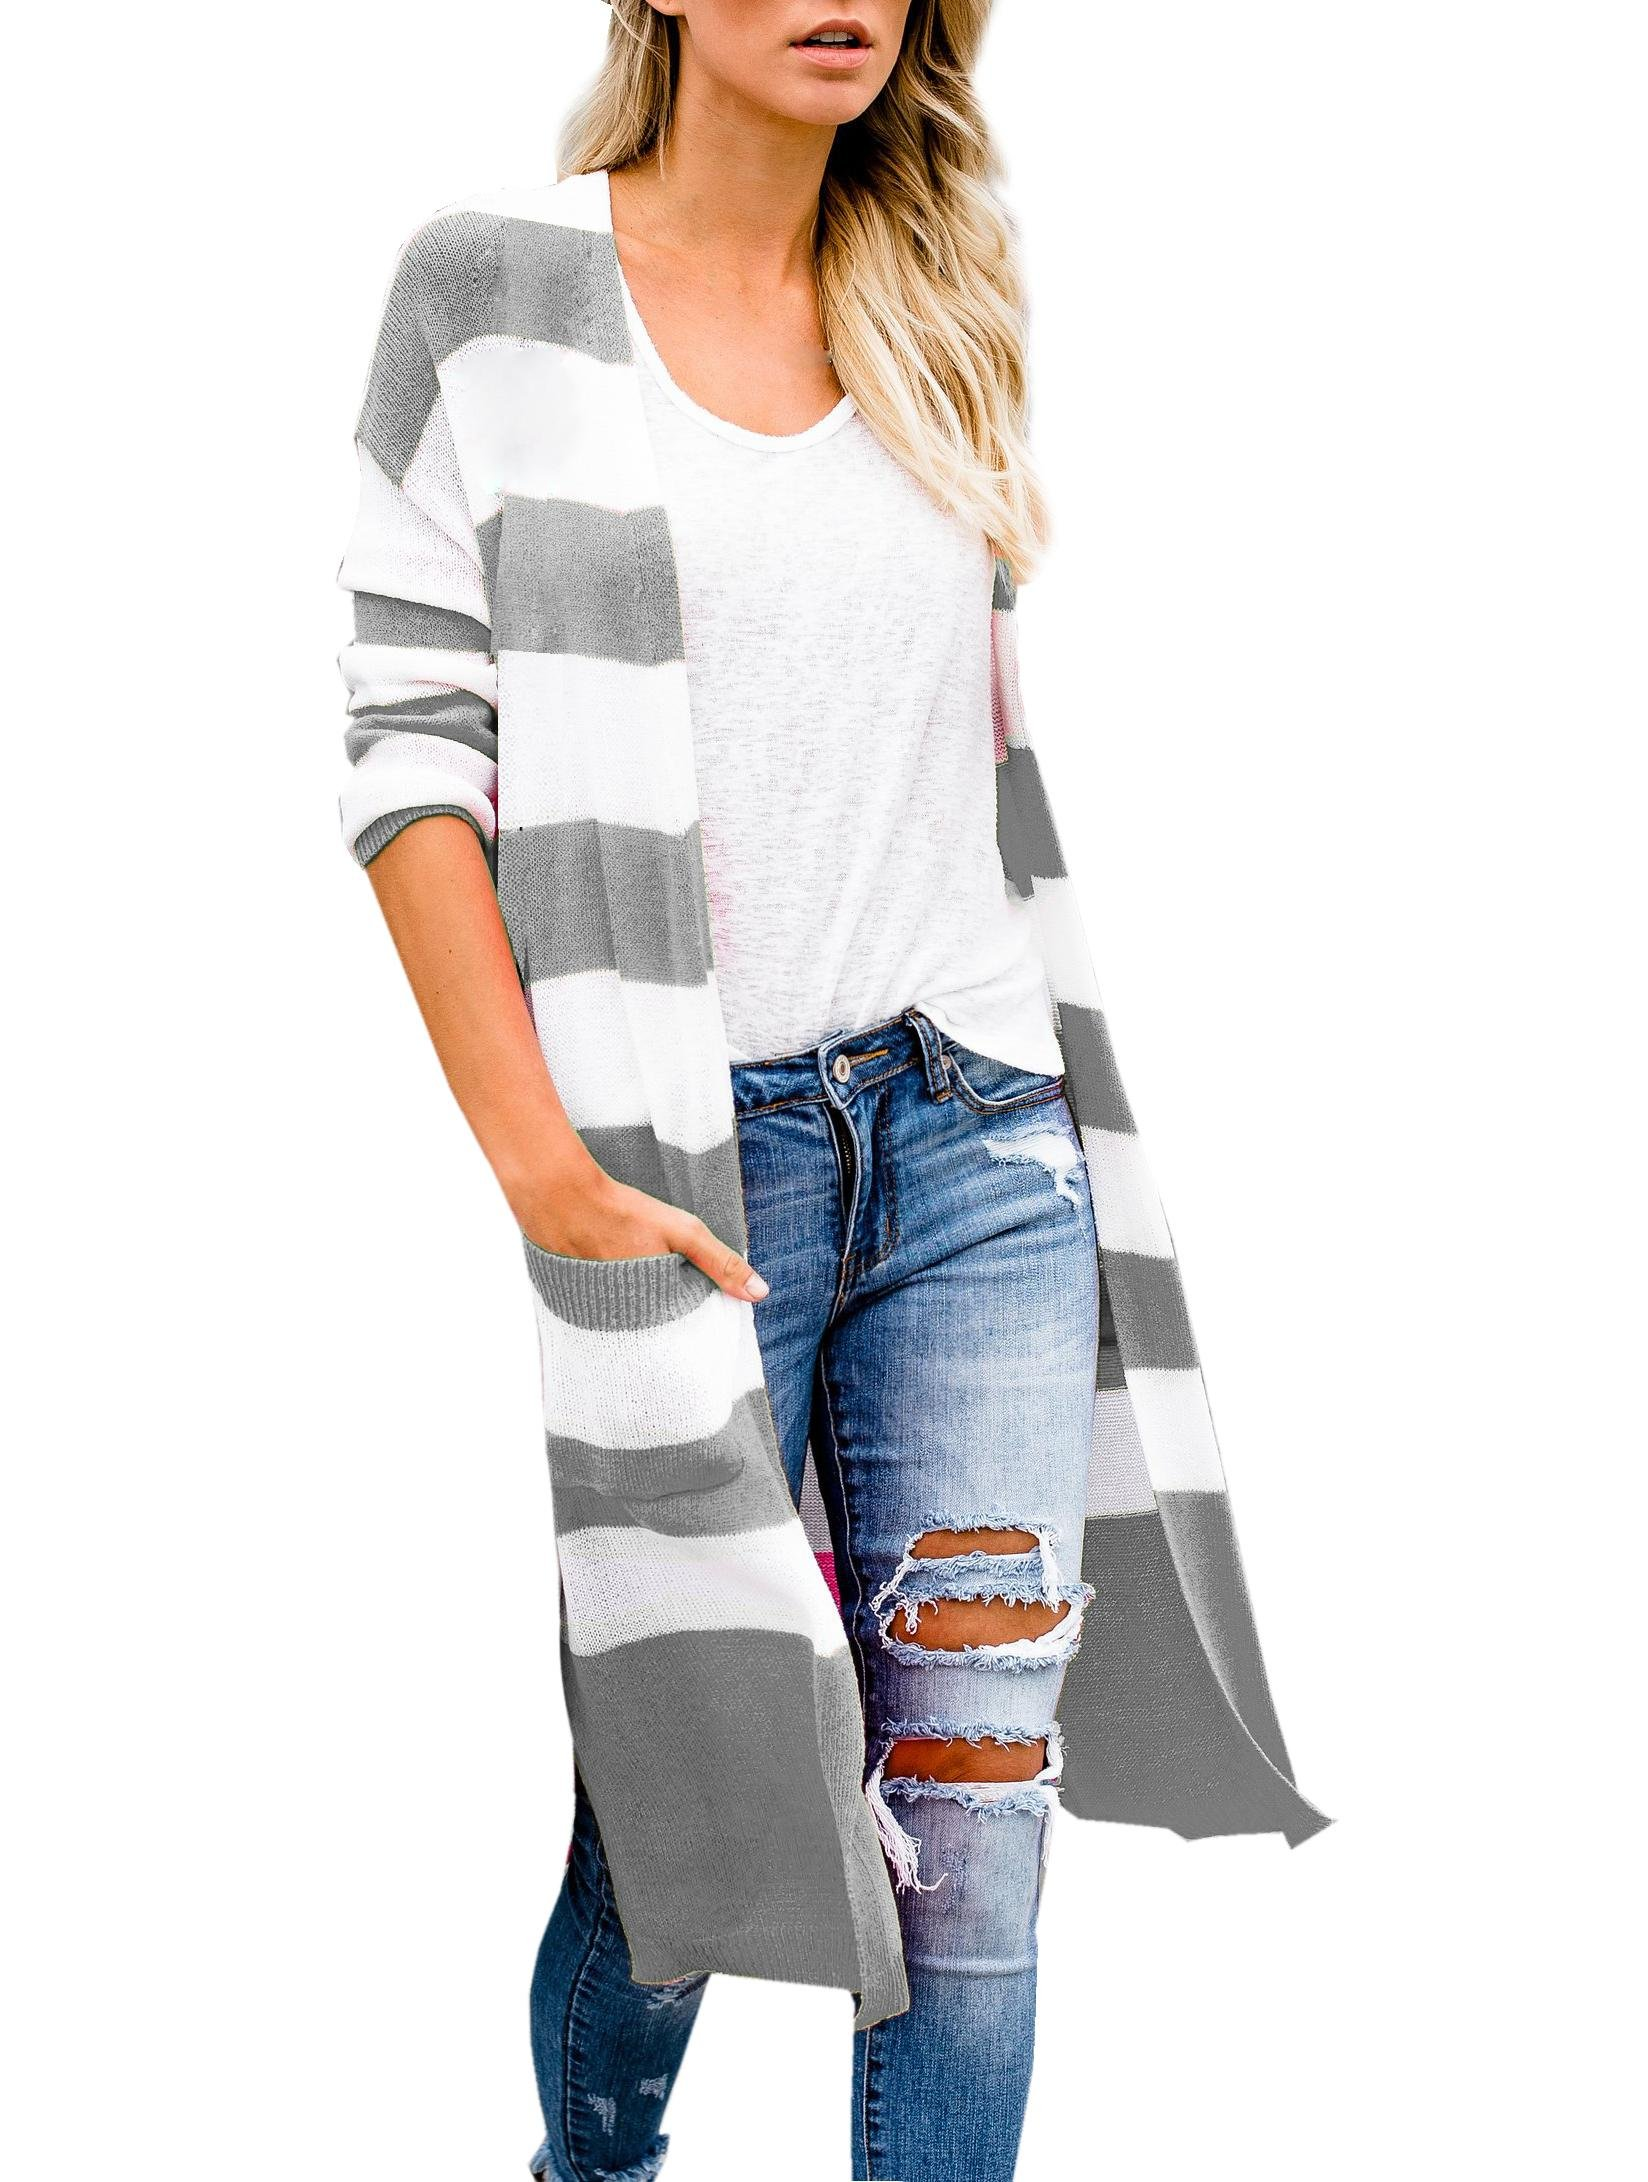 Remikstyt Womens Striped Cardigan Sweaters Geometric Colorblock Cardigans with Pockets